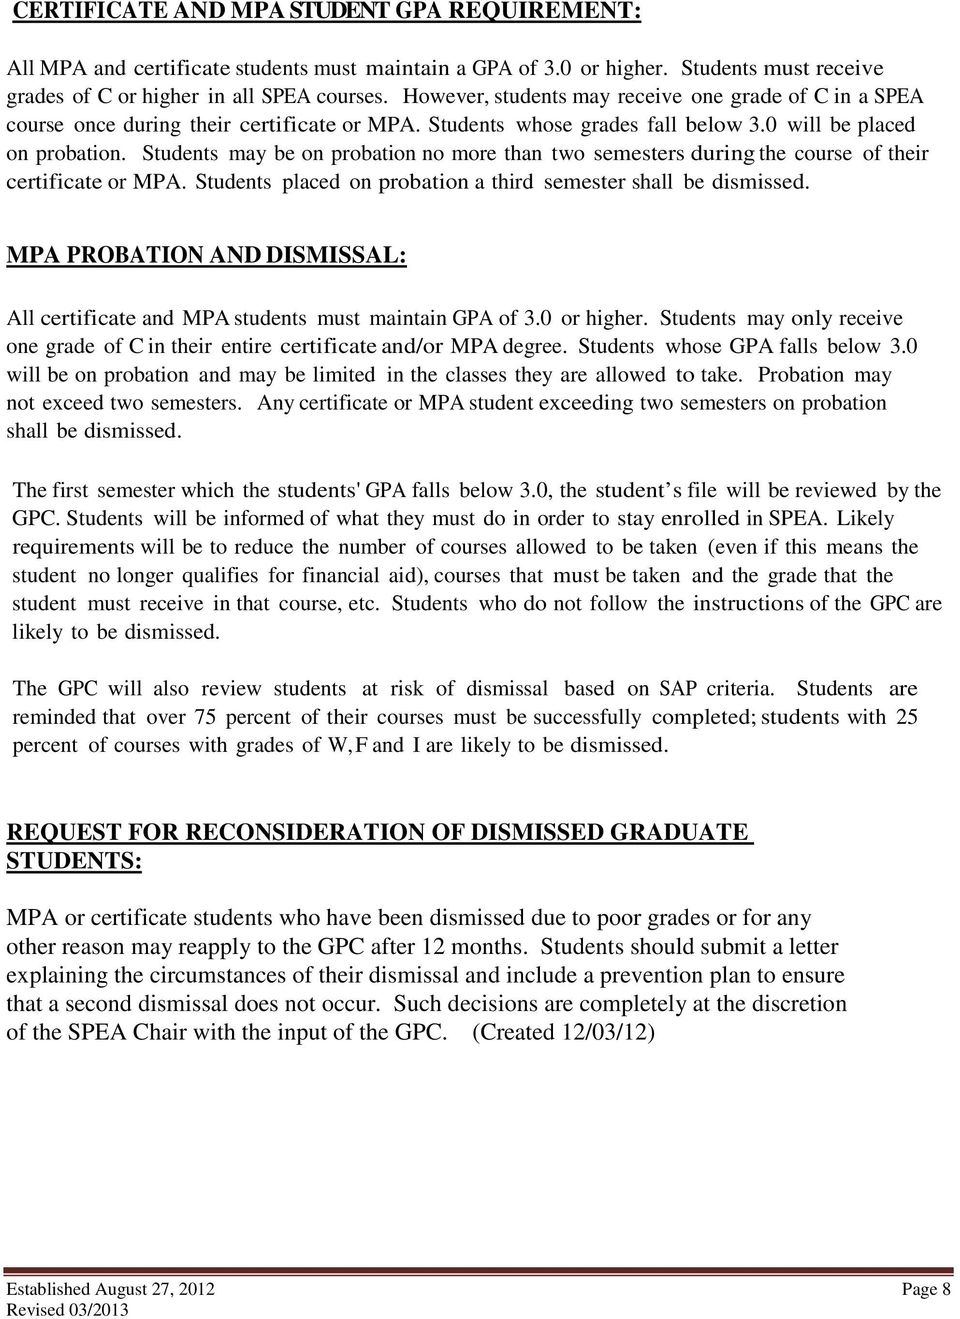 Students may be on probation no more than two semesters during the course of their certificate or MPA. Students placed on probation a third semester shall be dismissed.